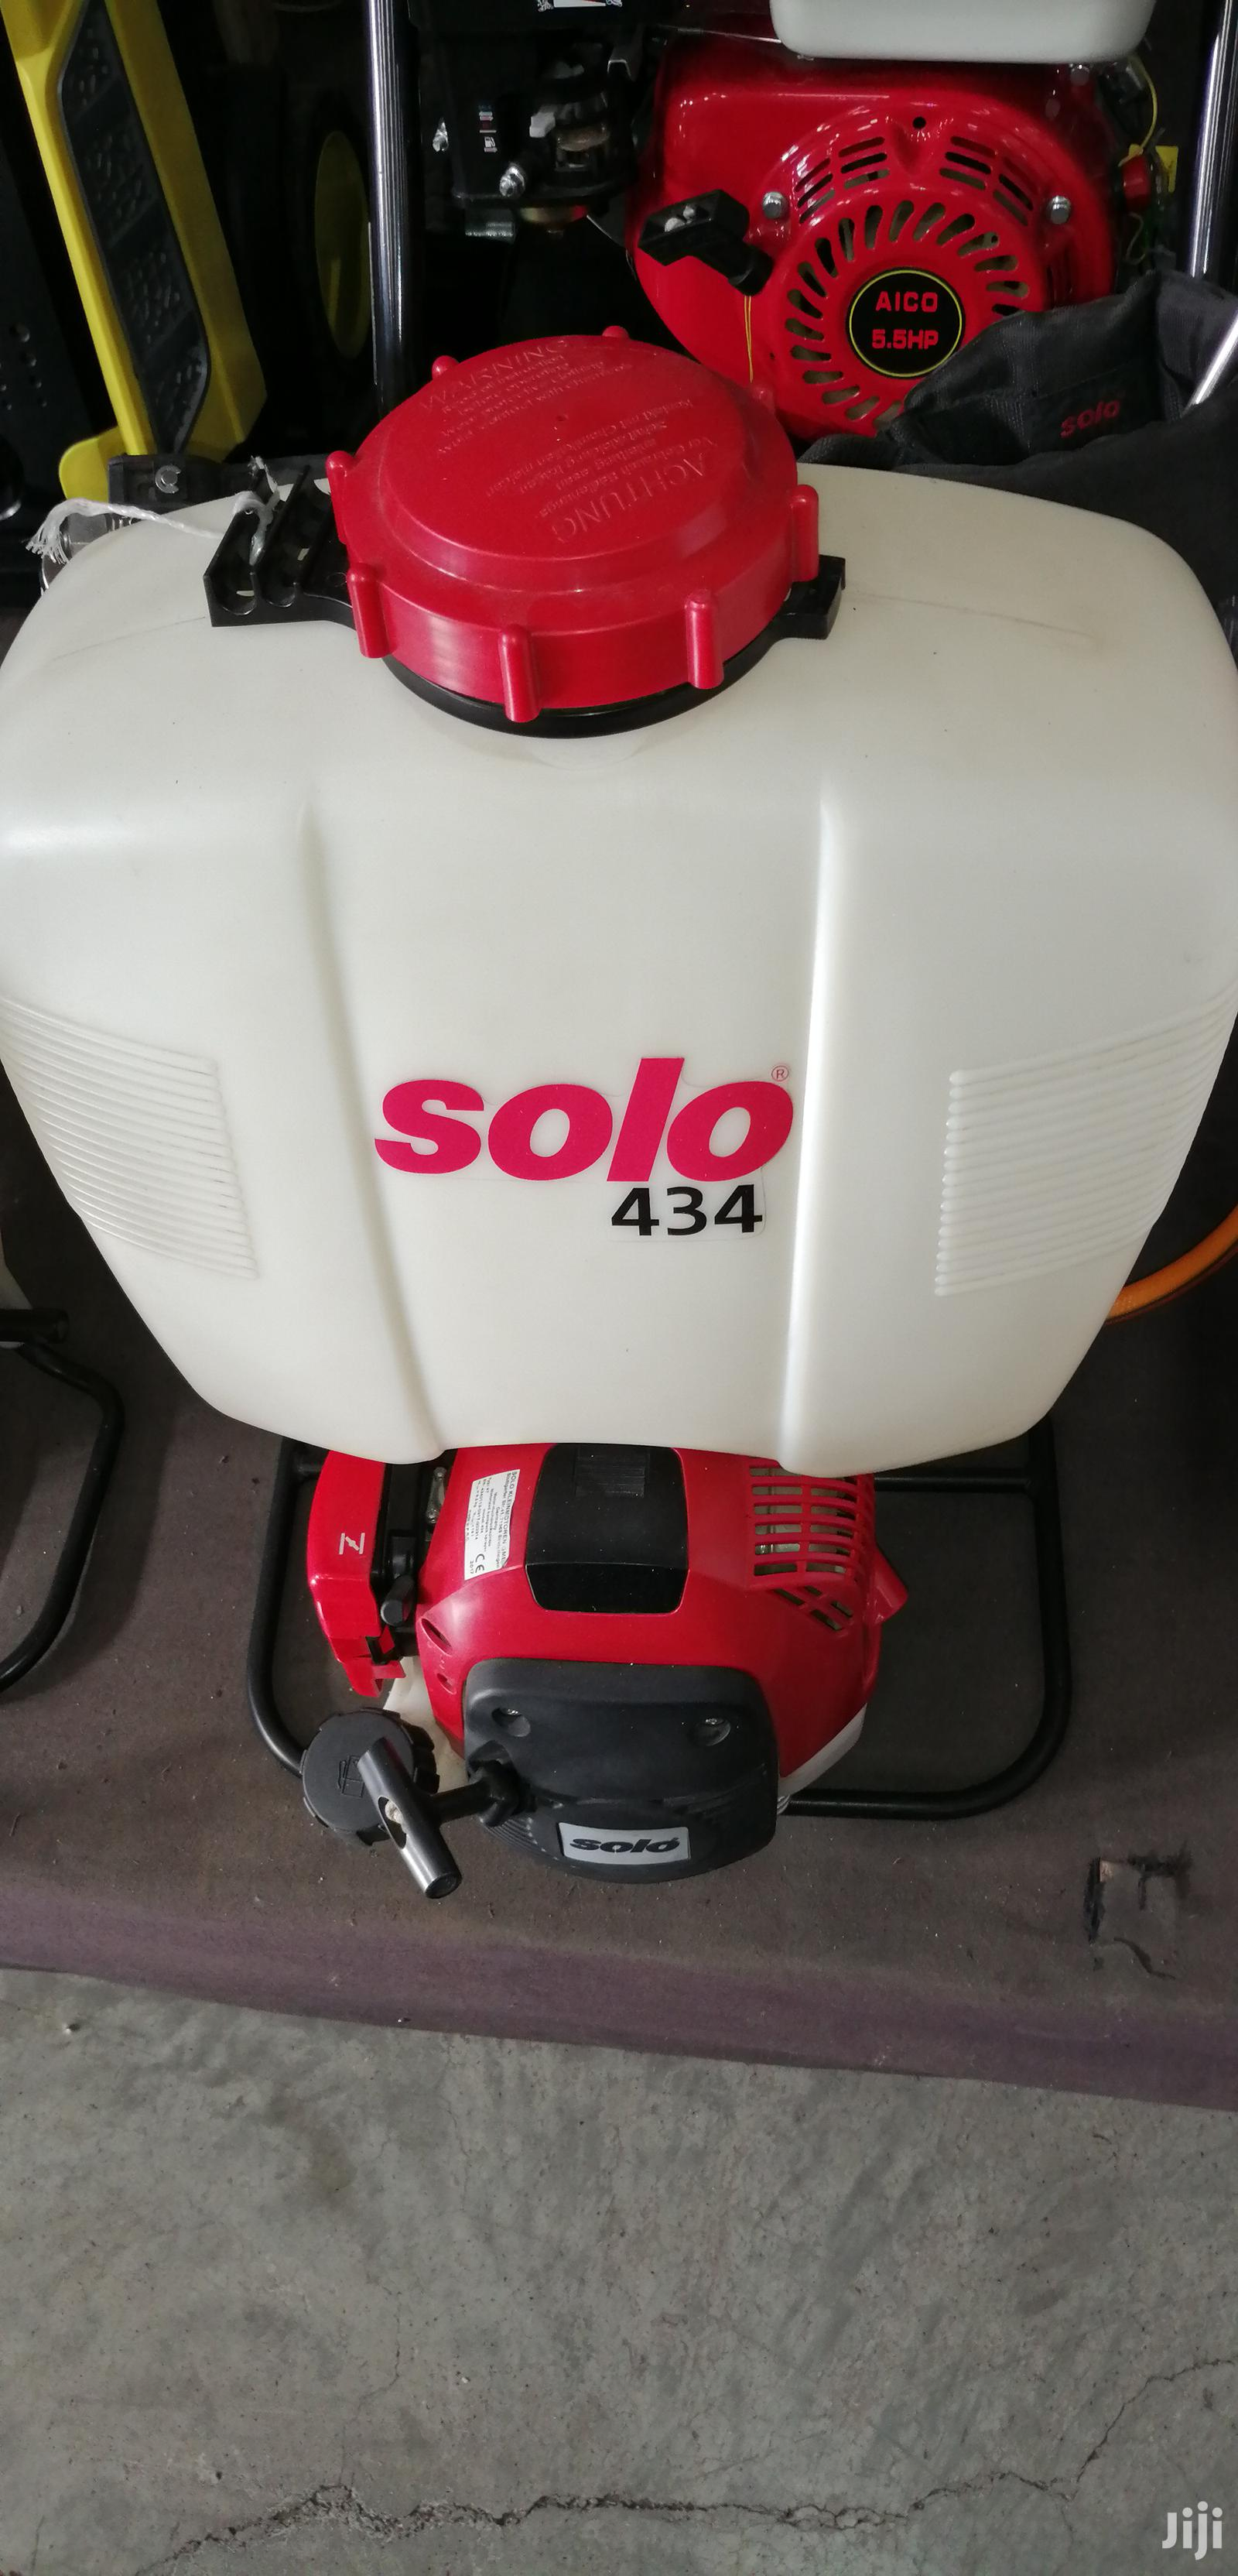 Brand New 434 SOLO Engine Sprayer.